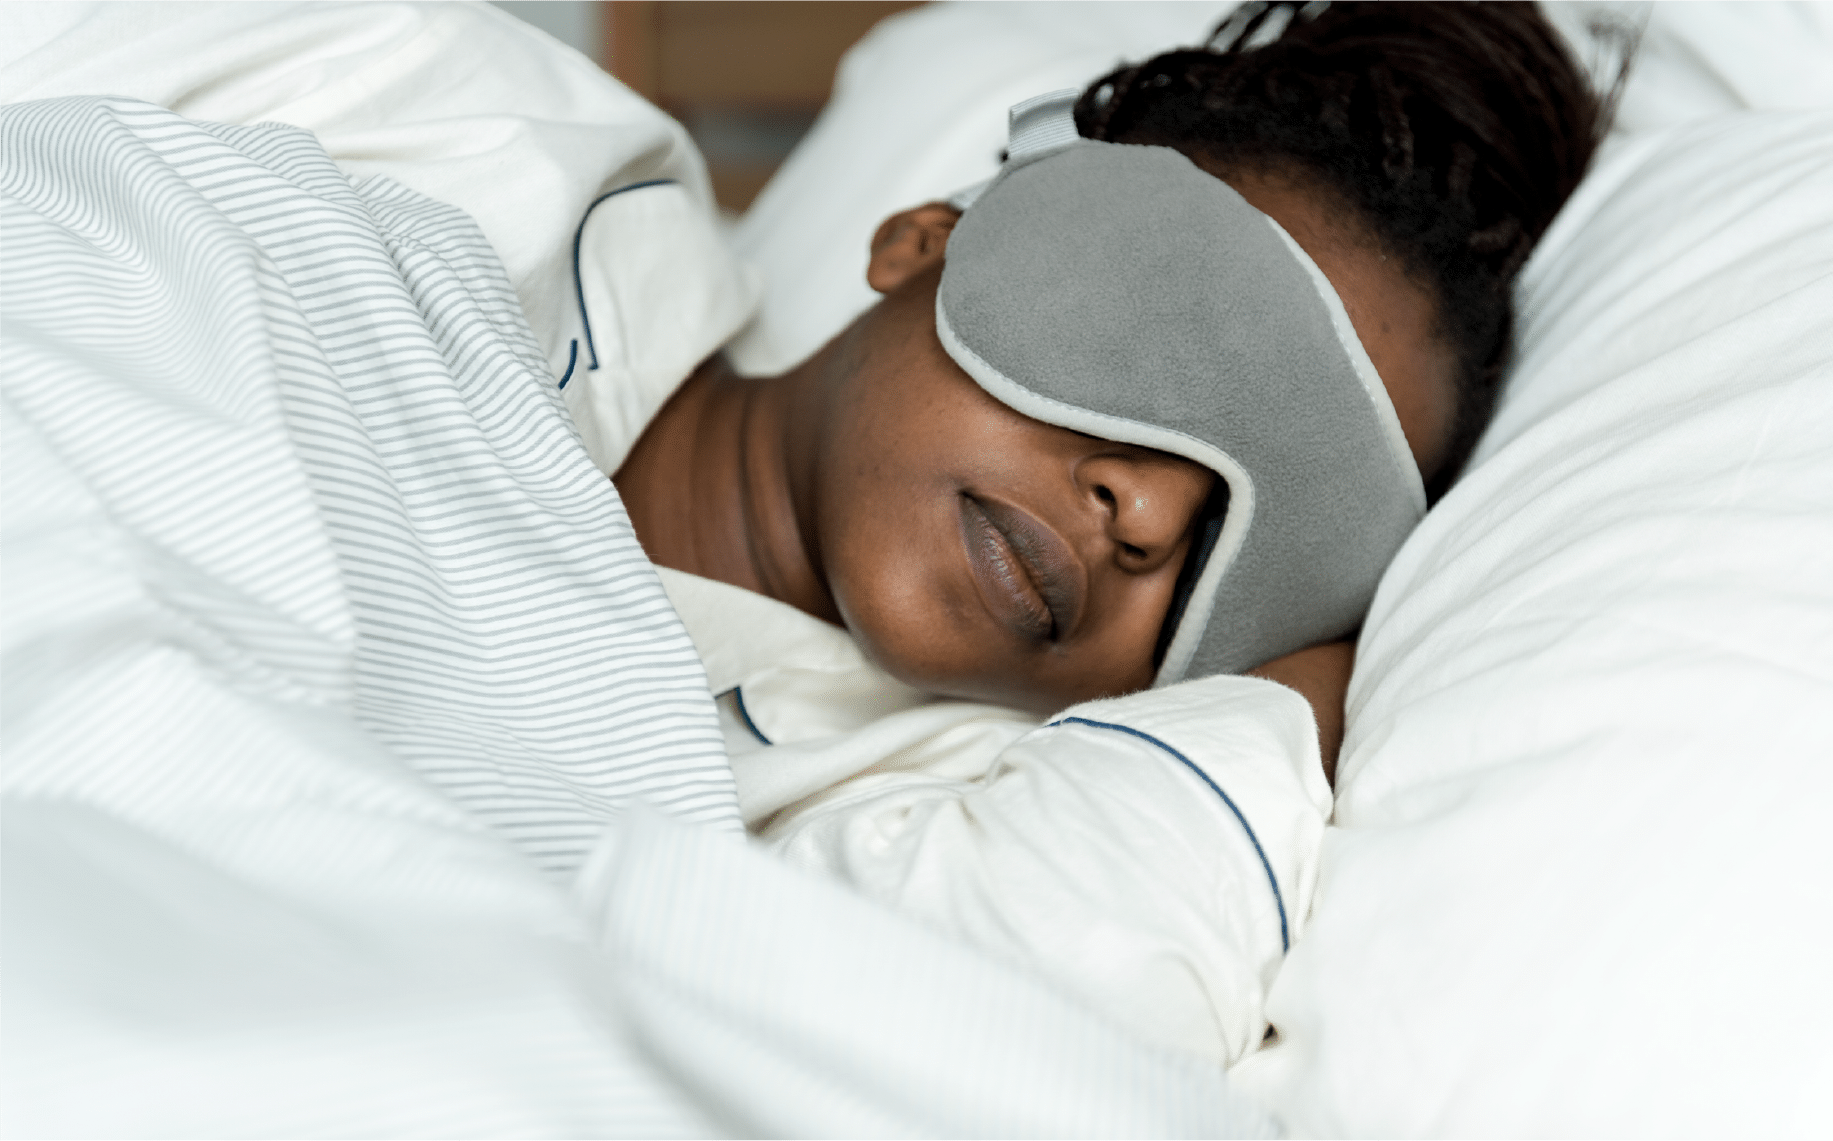 Women sleeping with a facemask on